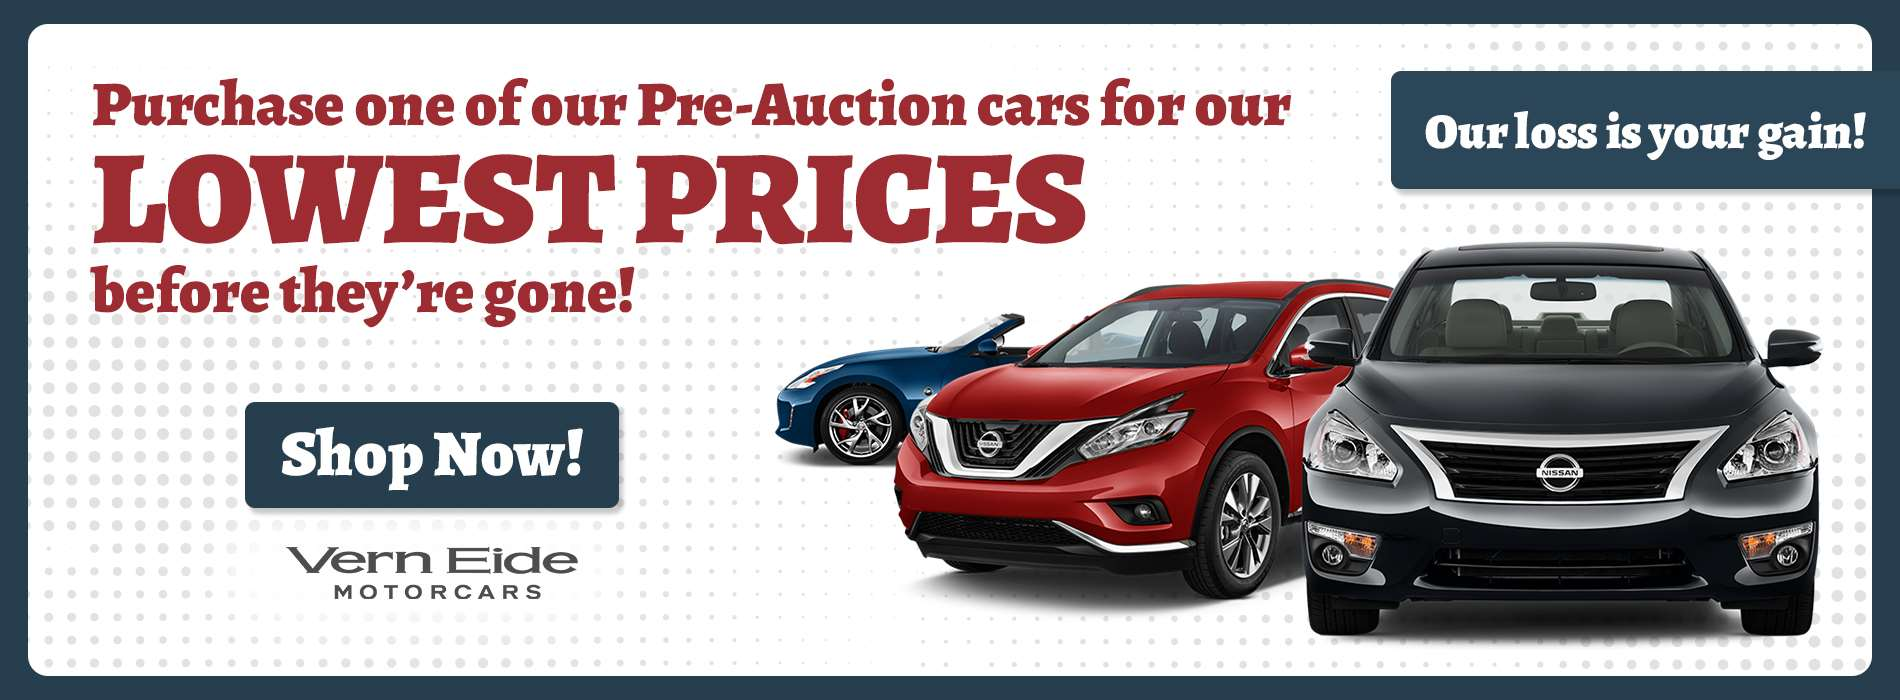 Honda - Pre-Auction Cars Shop Now - 2019